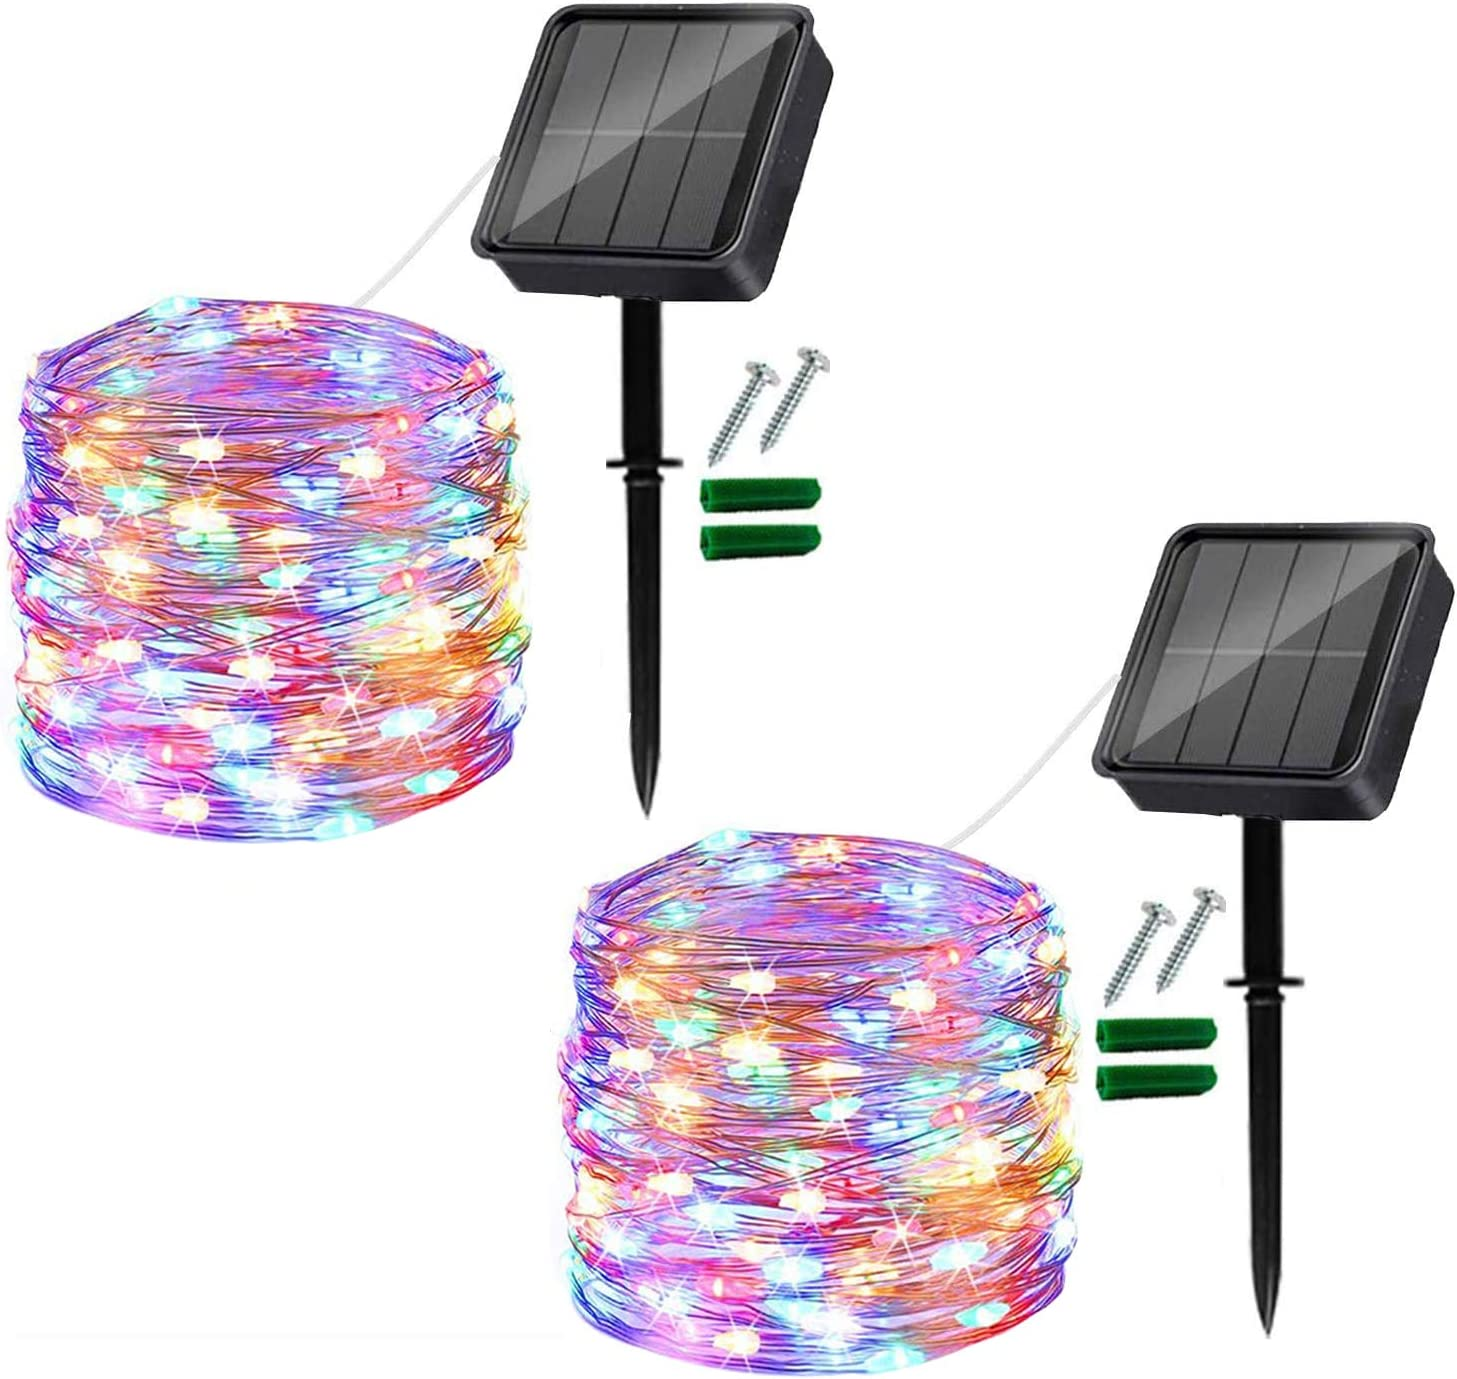 Solar String Lights Outdoor, 2 Pack 120LED Solar Garden Lights Waterproof 12M/40Ft 8 Modes Indoor/Outdoor Fairy Lights Copper Wire Decorative Lighting for Patio, Yard, Party, Wedding (Multi-Colored)